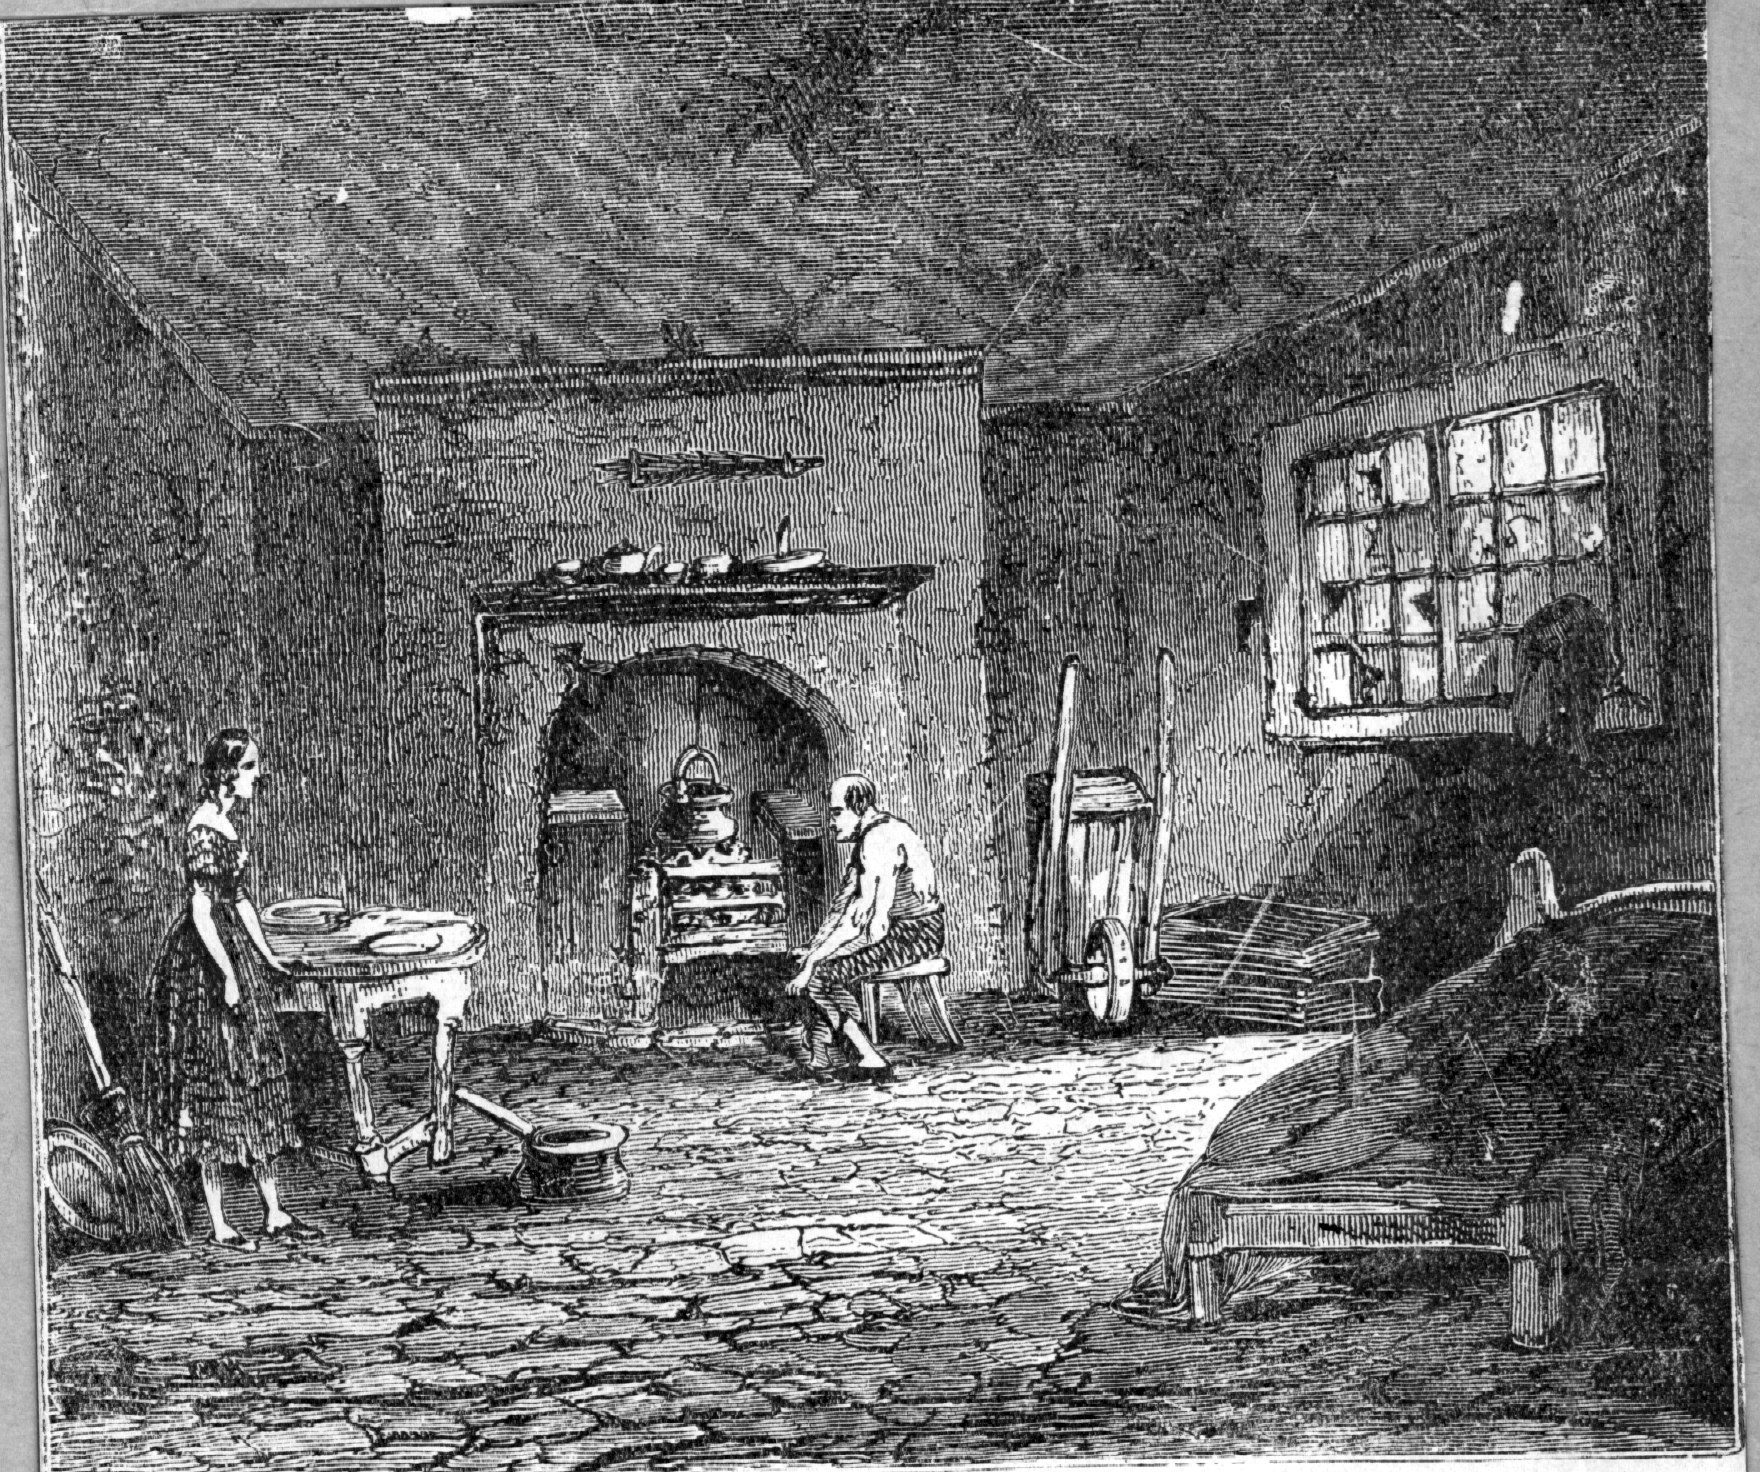 A Pandemic from the Past: Manchester and Cholera 1832